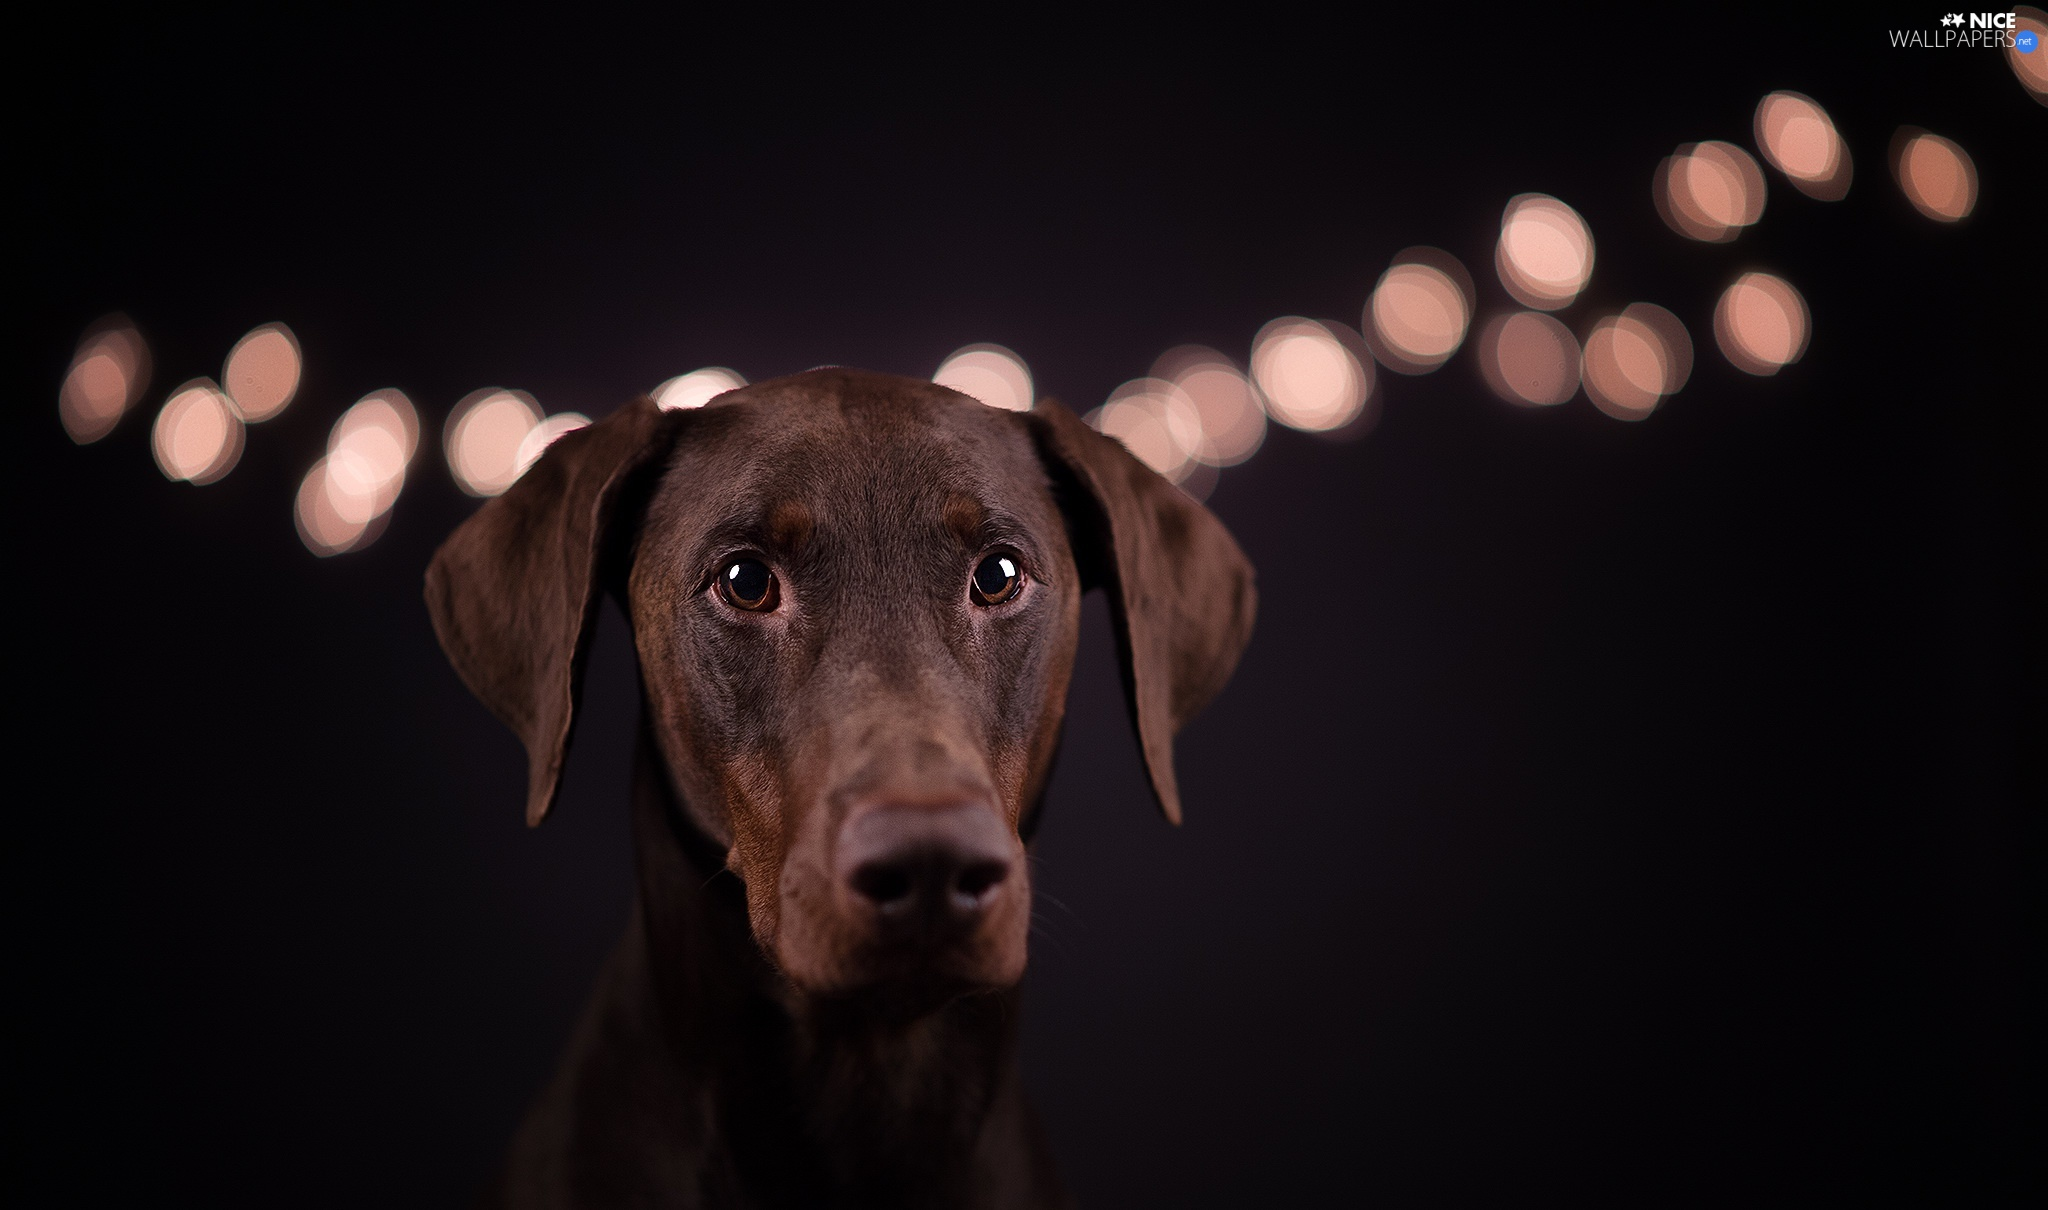 Black, background, Doberman, light, dog